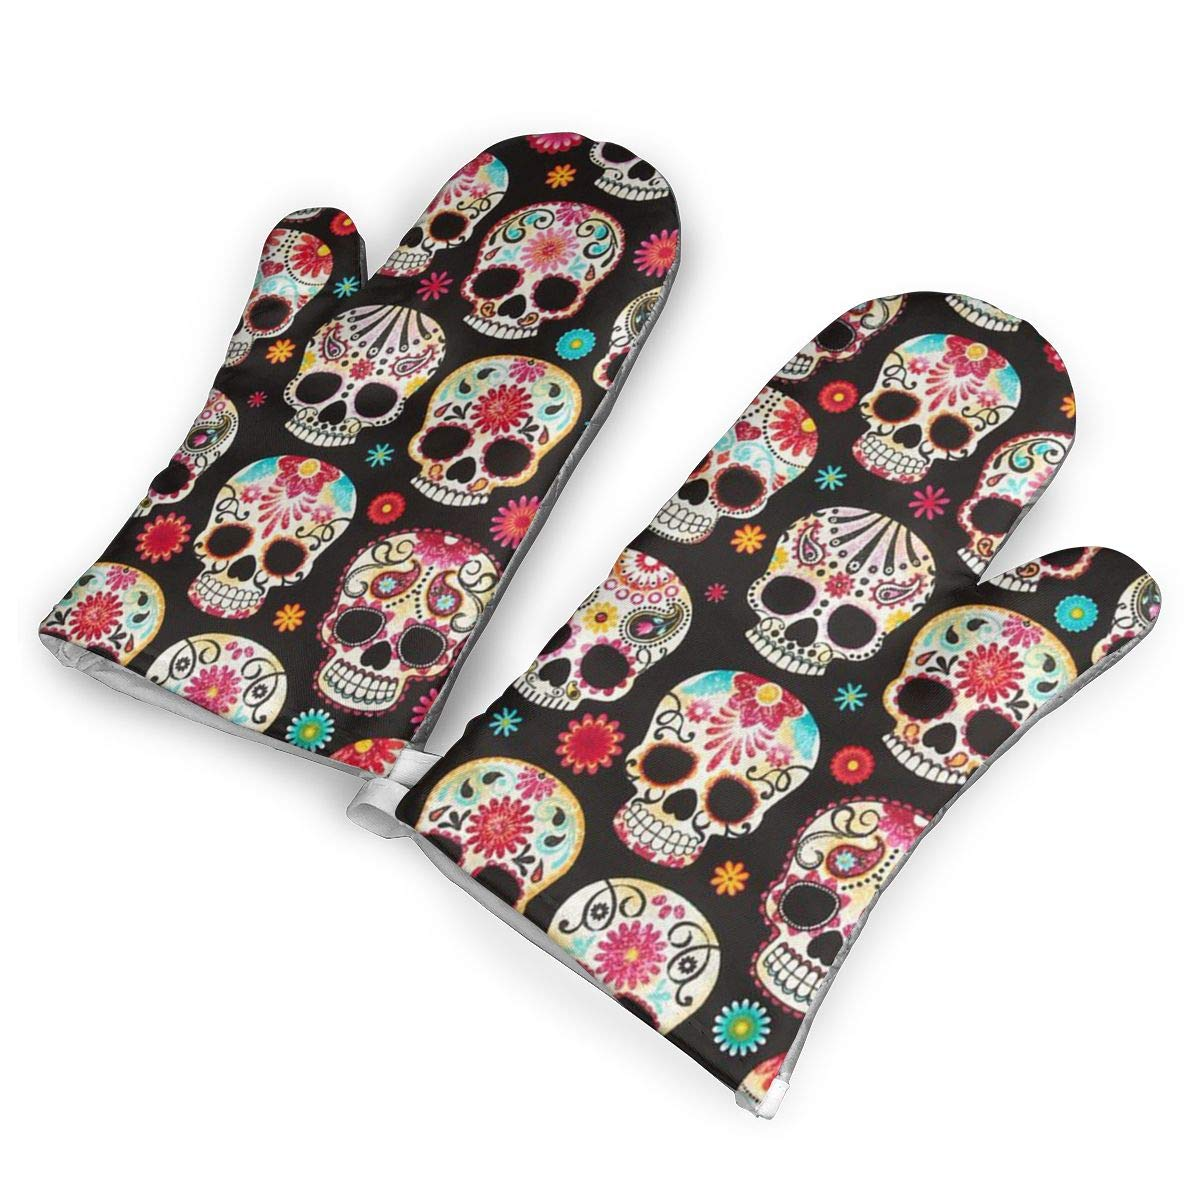 HEEHEE Day of The Dead Skulls Oven Mitts and Potholders Kitchen Counter Safe Mats,Advanced Heat Resistant Oven Mitt, Non-Slip Textured Grip Pot Holders